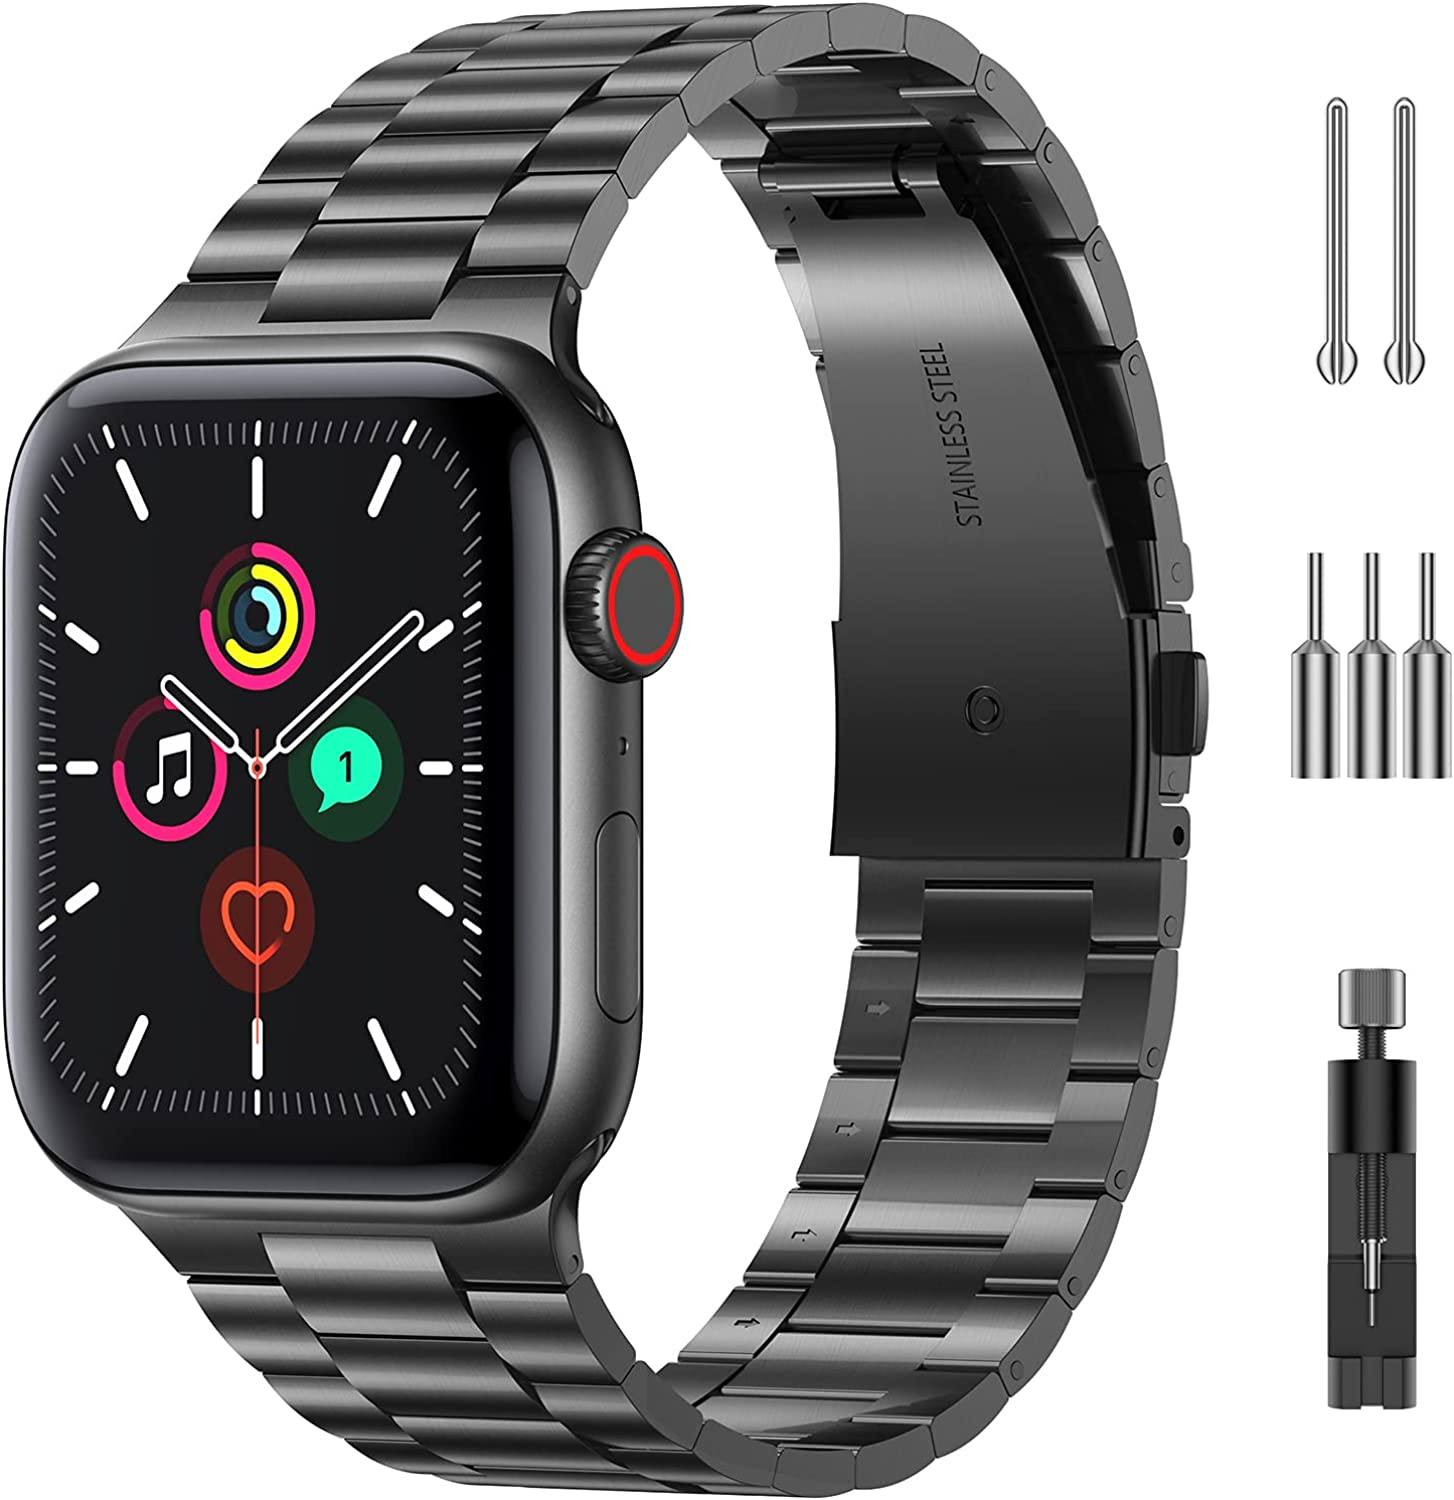 MOBOSI Compatible with Apple Watch Band 38mm 40mm 42mm 44mm Thin Replacement Band Stainless Steel Metal Wristband for Watch SE Series 6/5/4/3/2/1